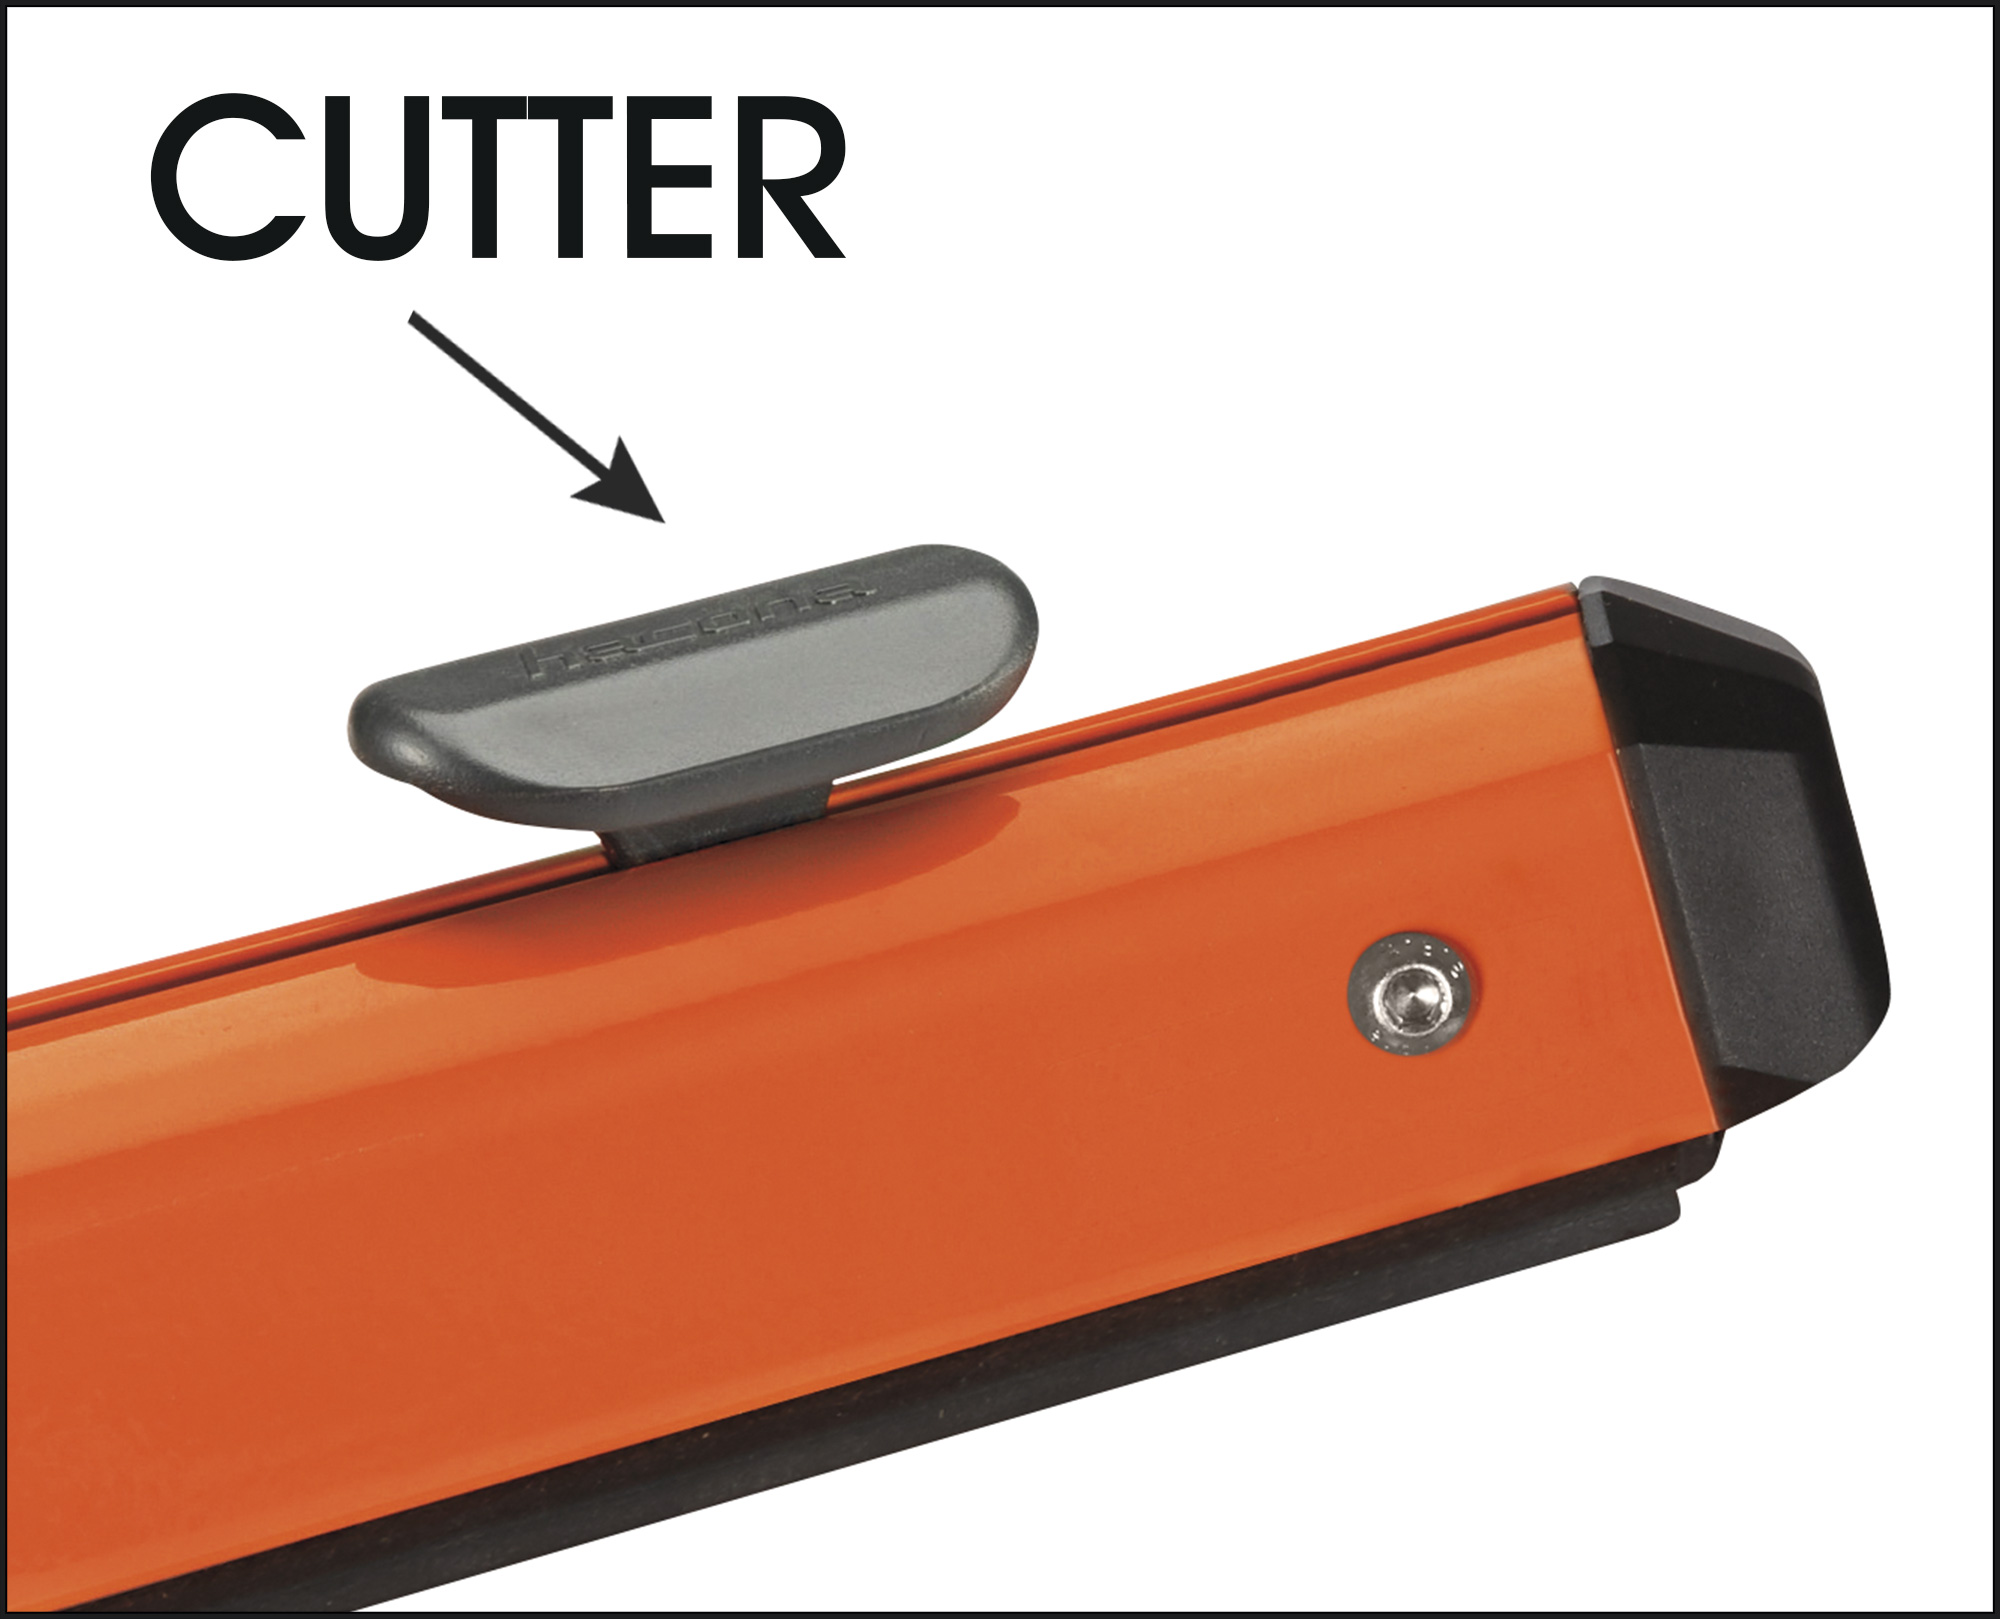 Deluxe Foot-Operated Sealer with Cutter